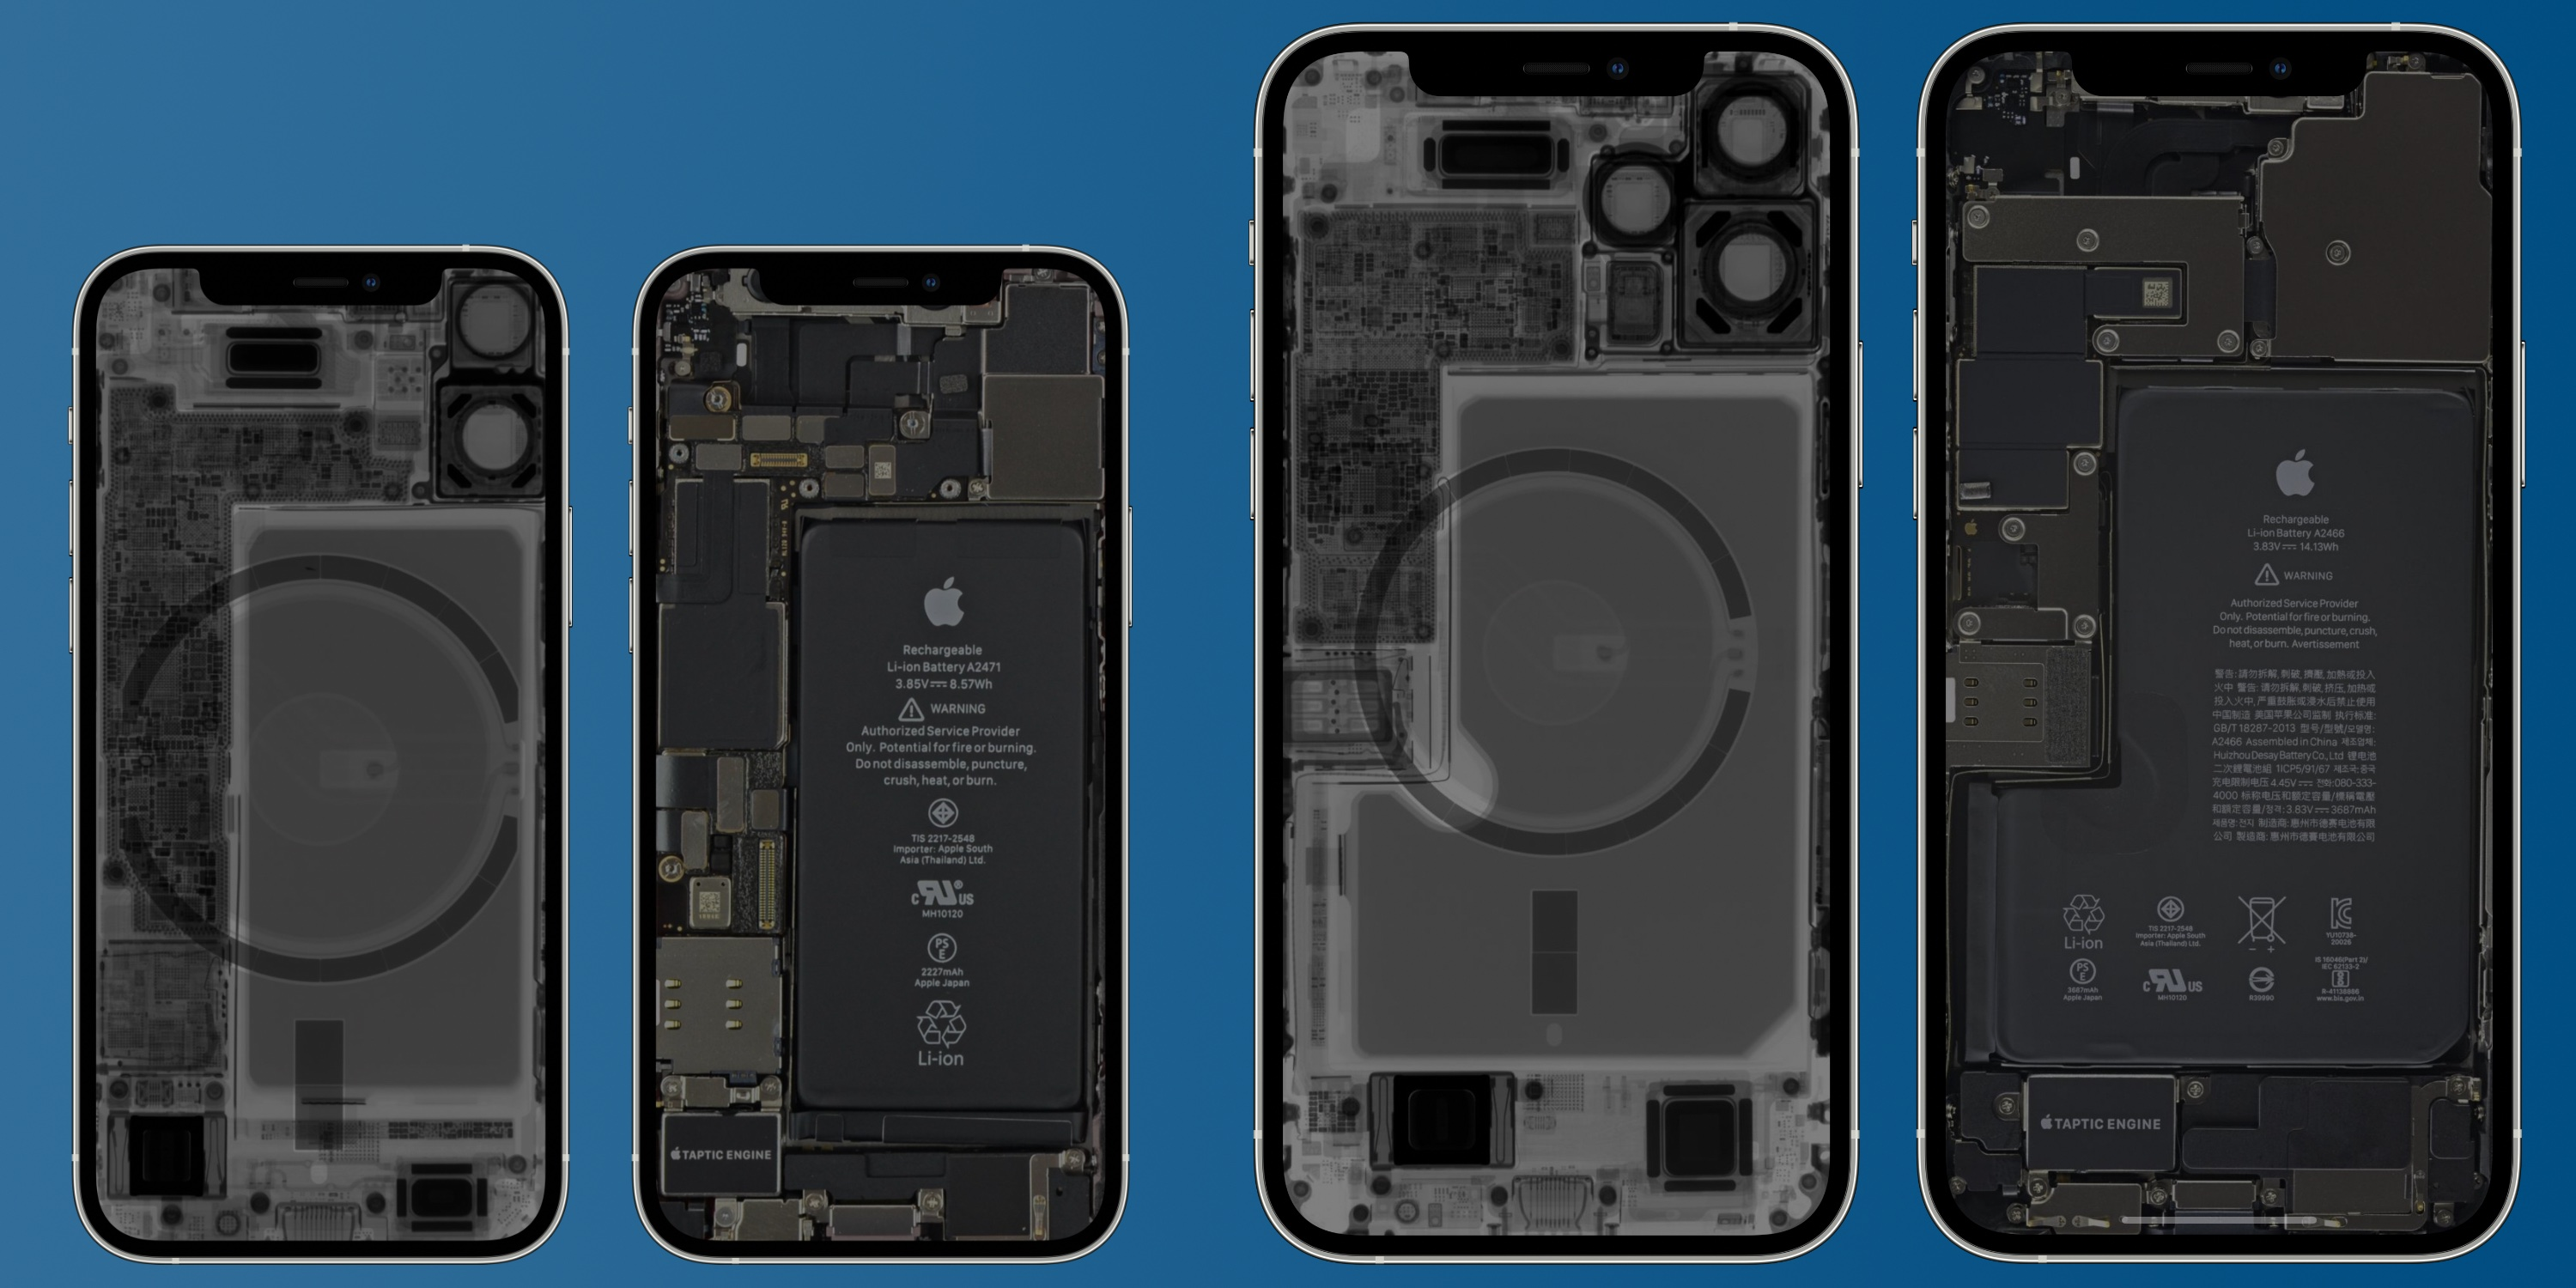 Peek inside your new iPhone 12 mini and iPhone 12 Pro Max with iFixit'sX-ray wallpapers - 9to5Mac